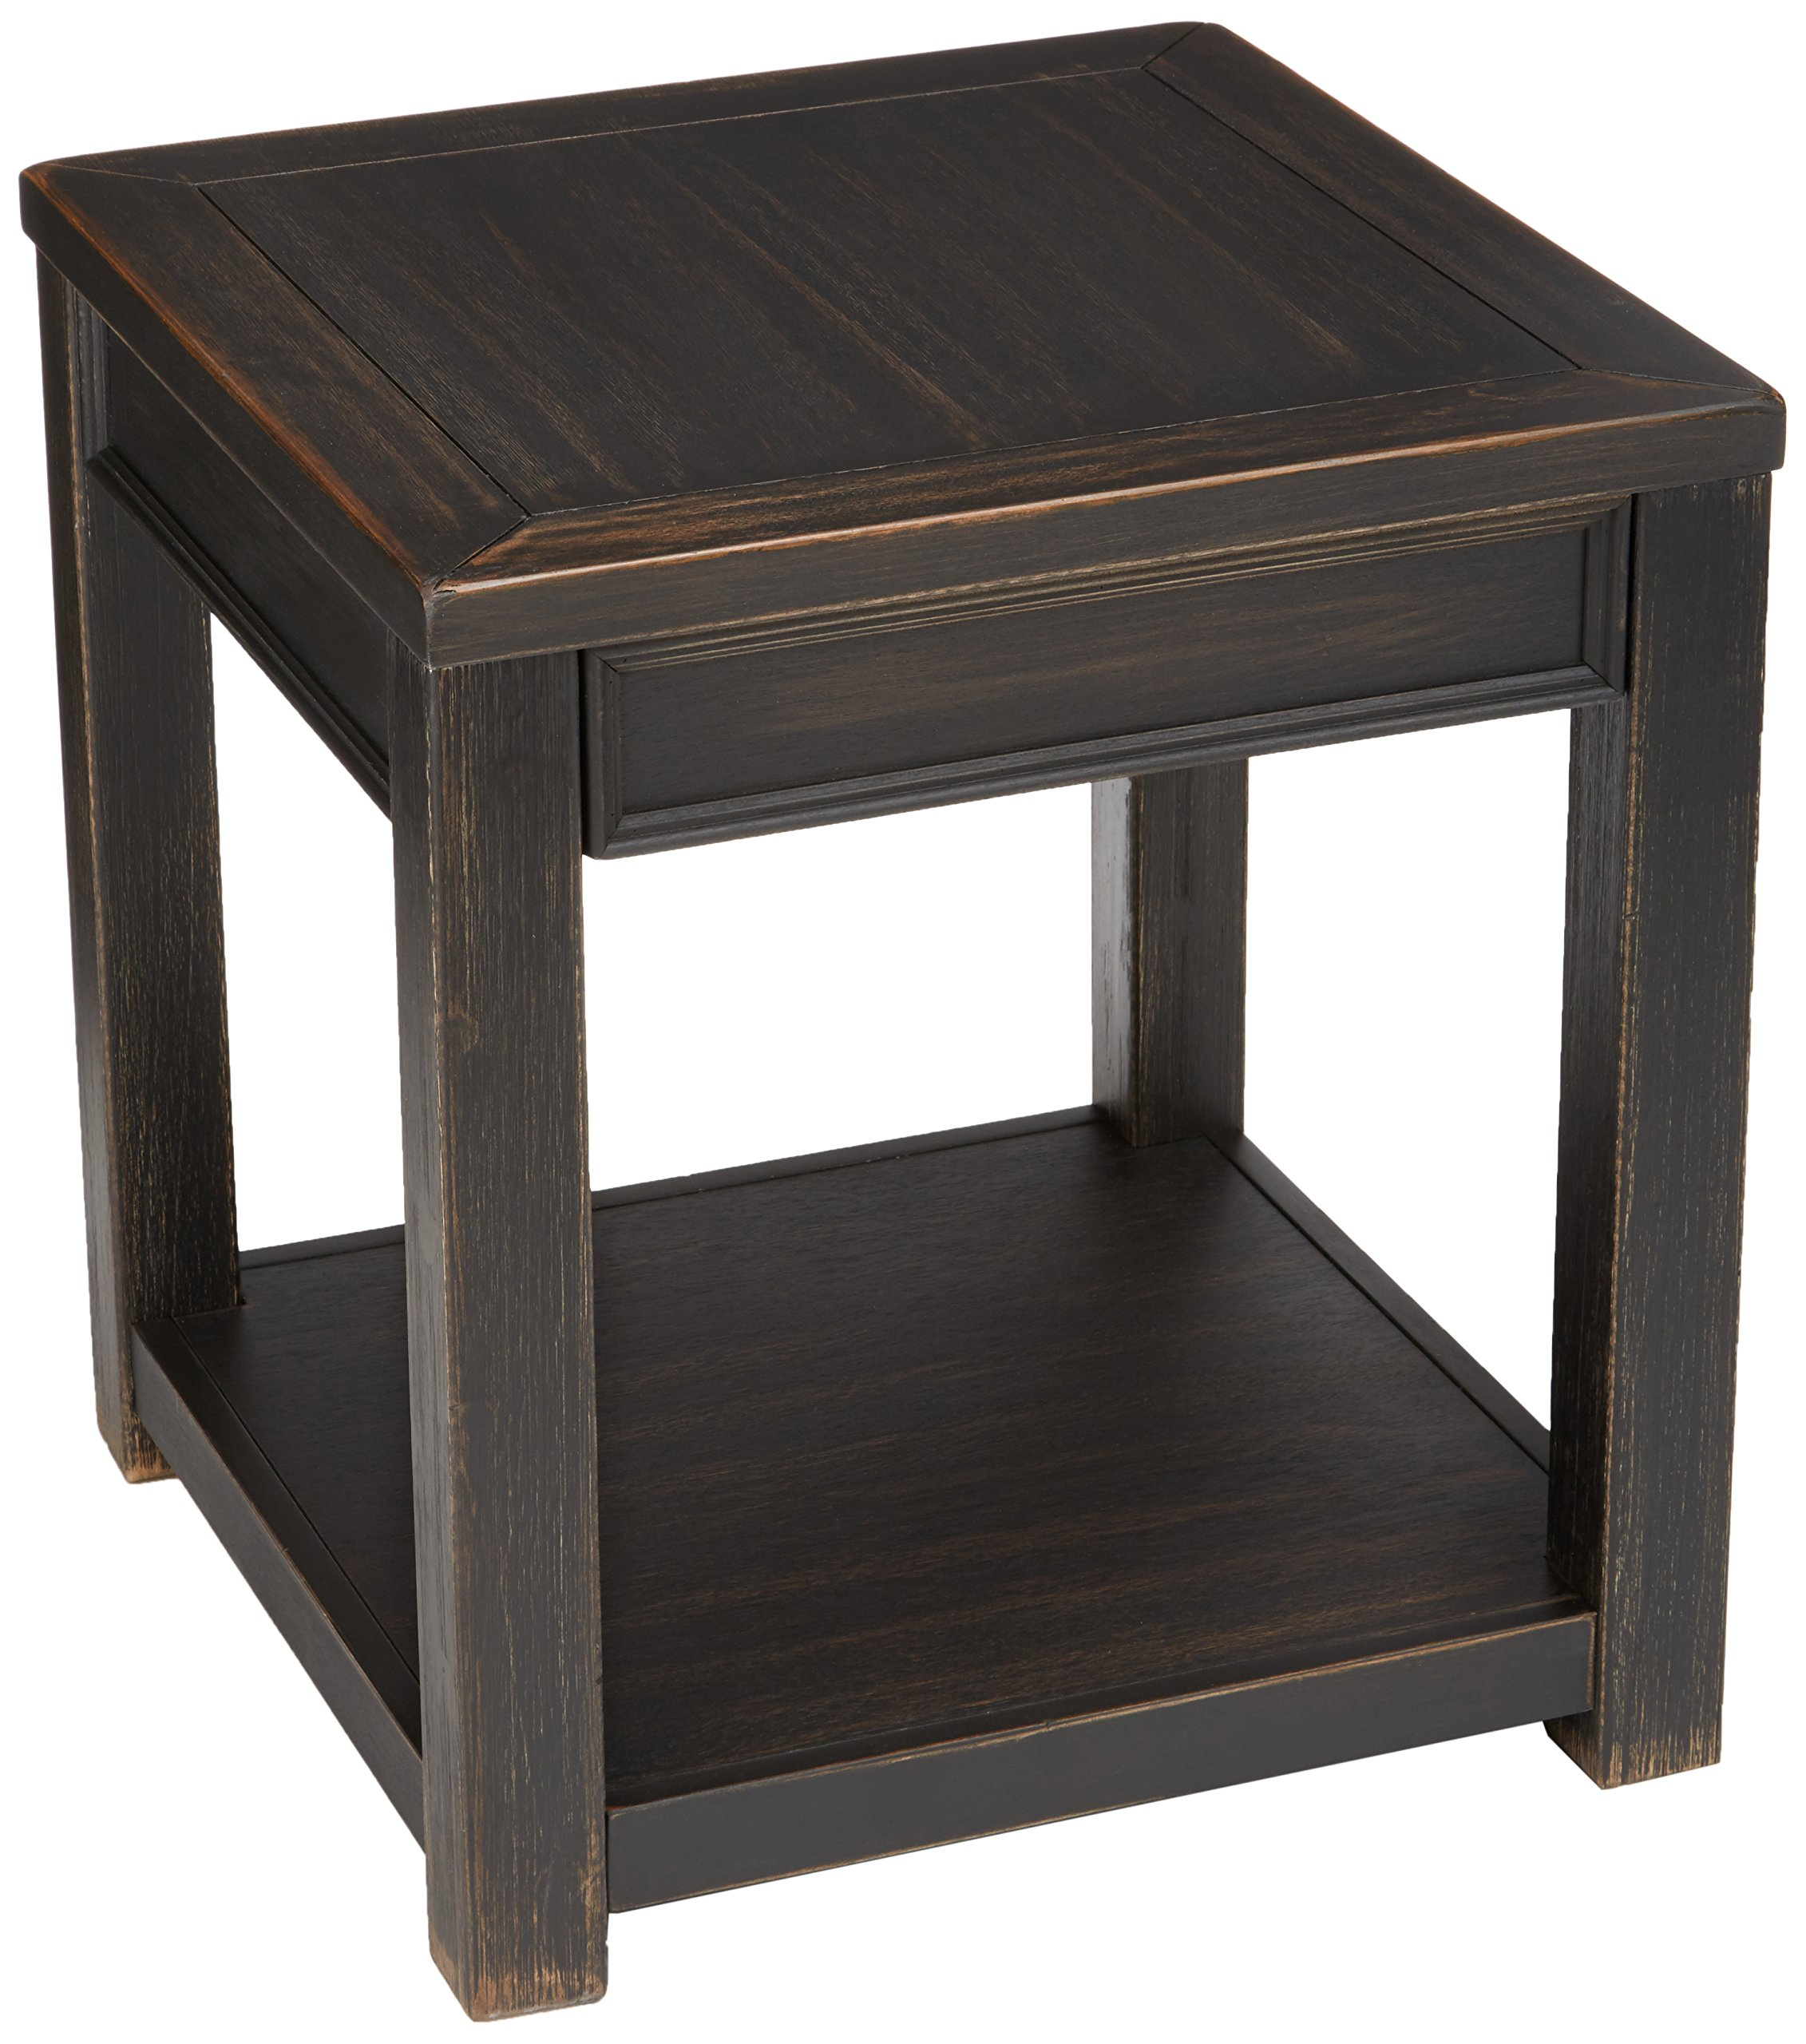 Ashley Furniture Signature Design - Gavelston End Table - Square - Rubbed Black Finish by Signature Design by Ashley